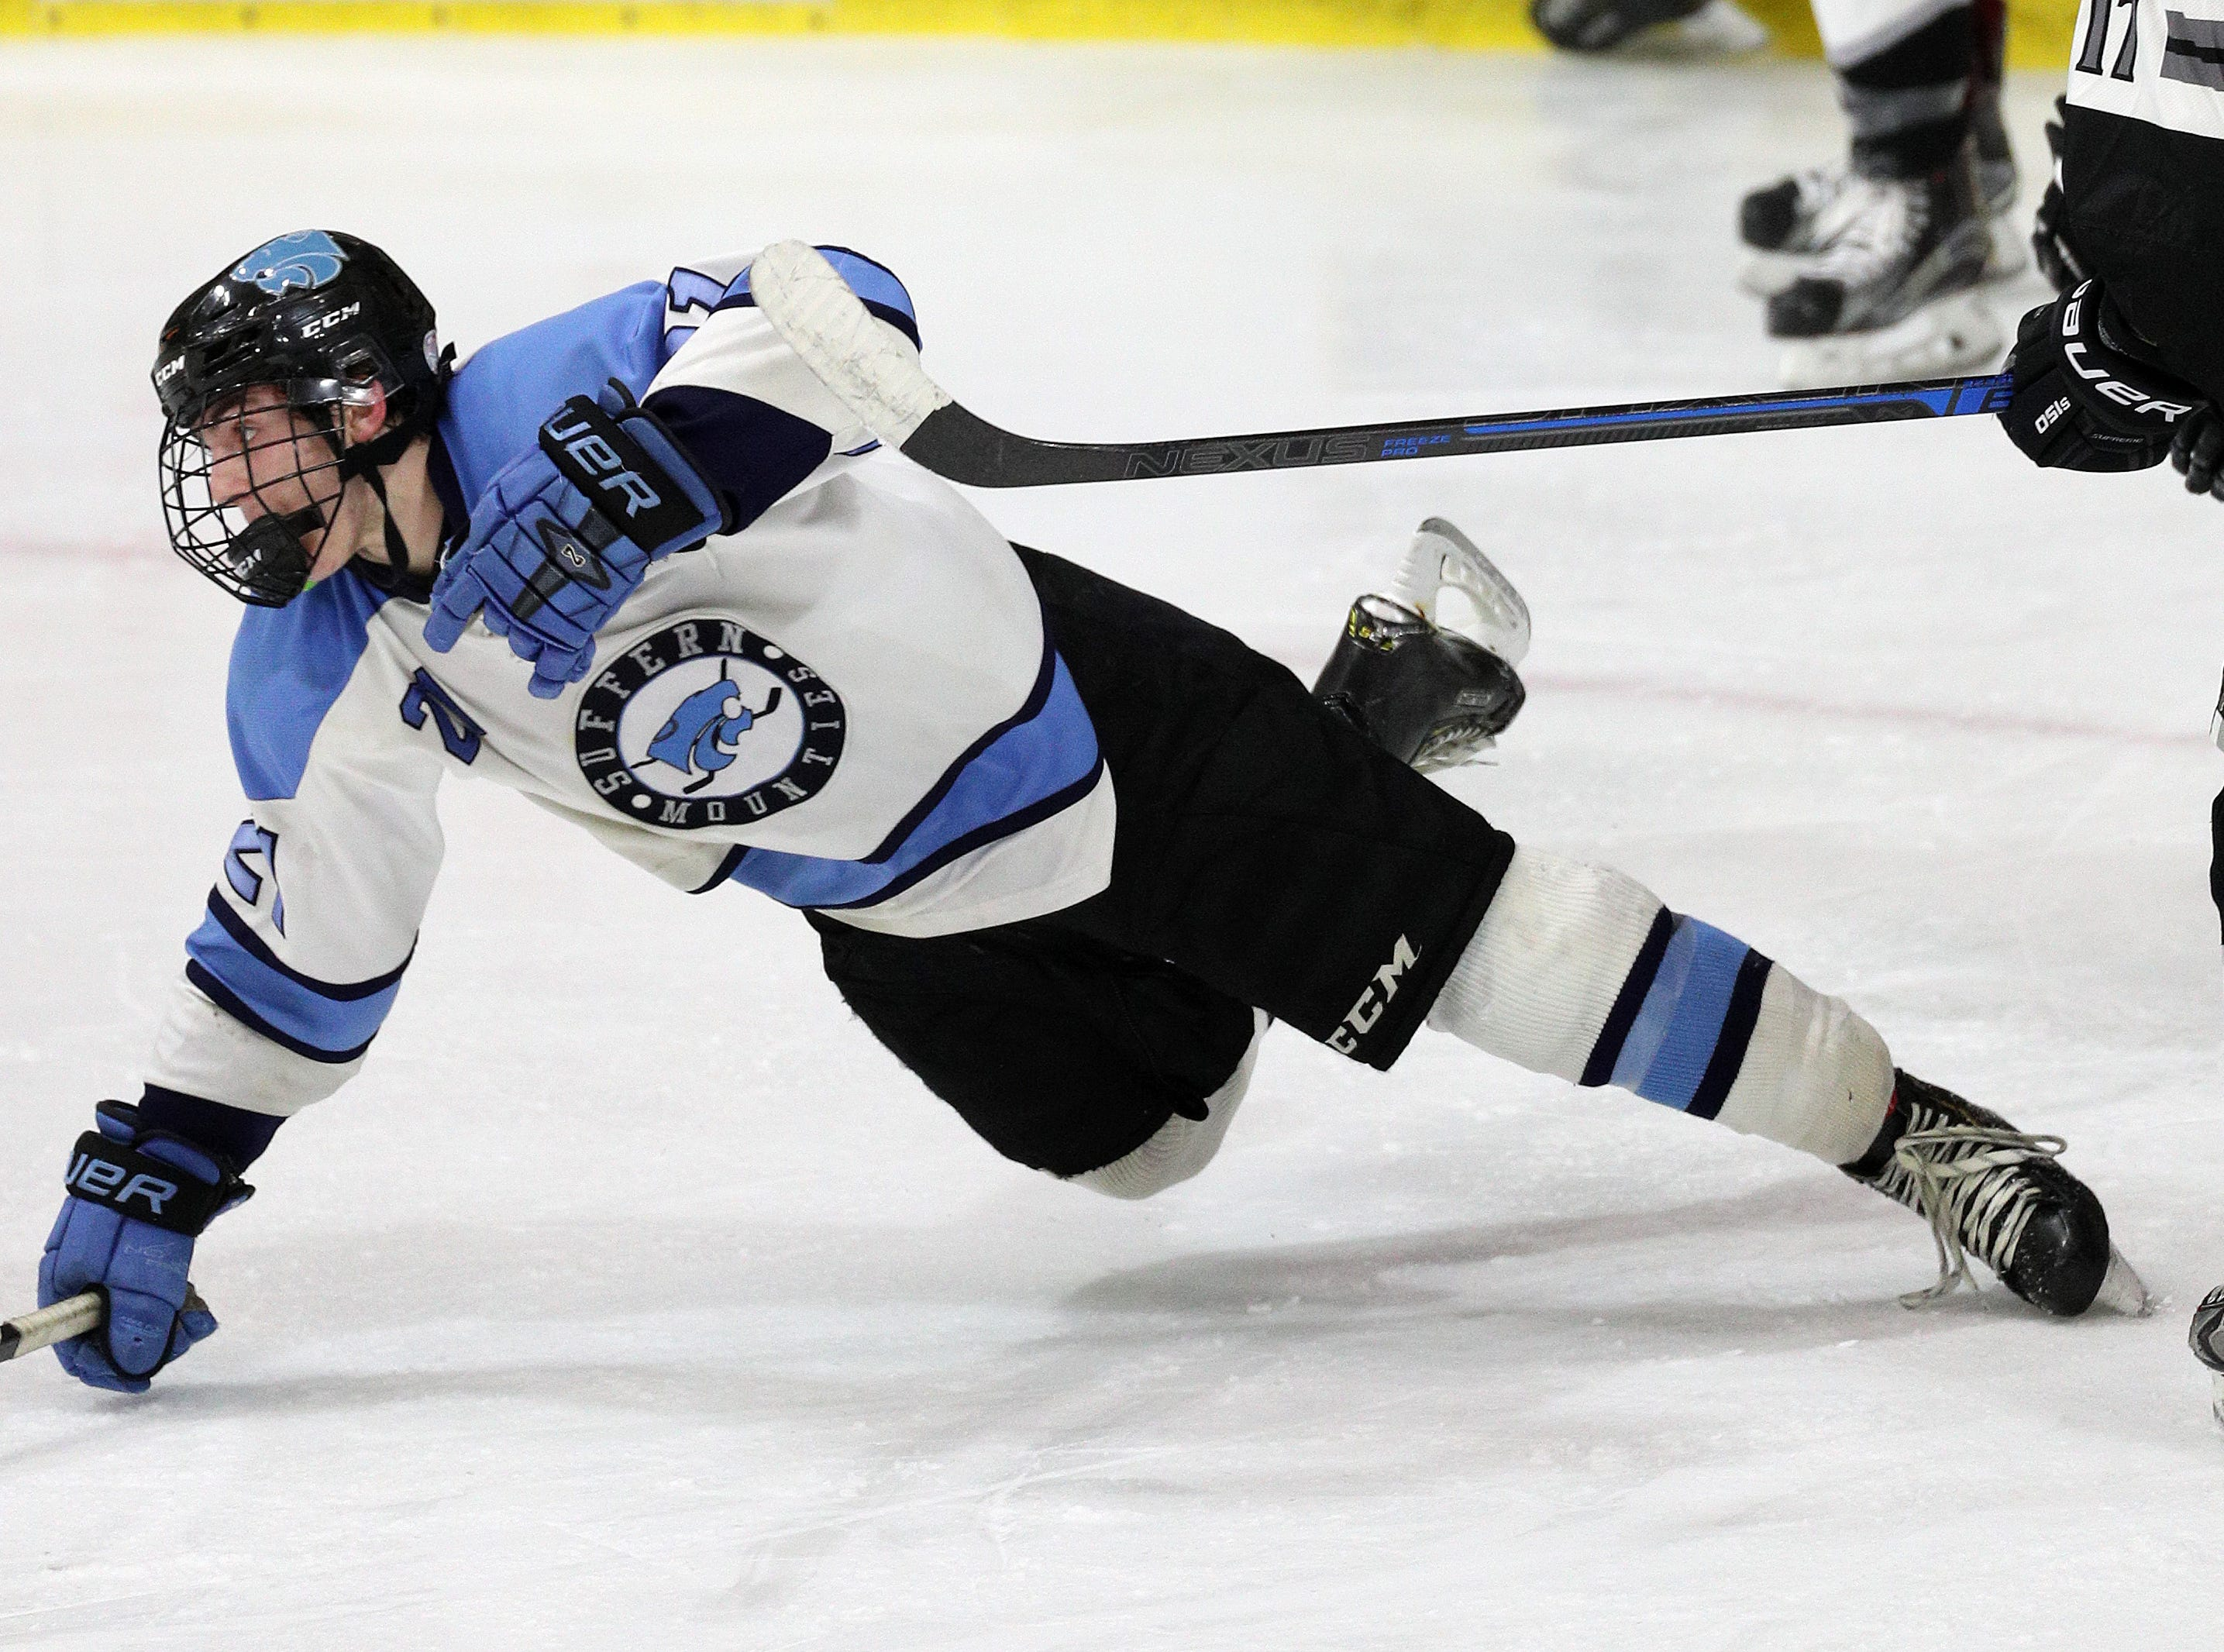 Suffern's Kyle Foresta is taken to the ice and draws an interference call against Syracuse.